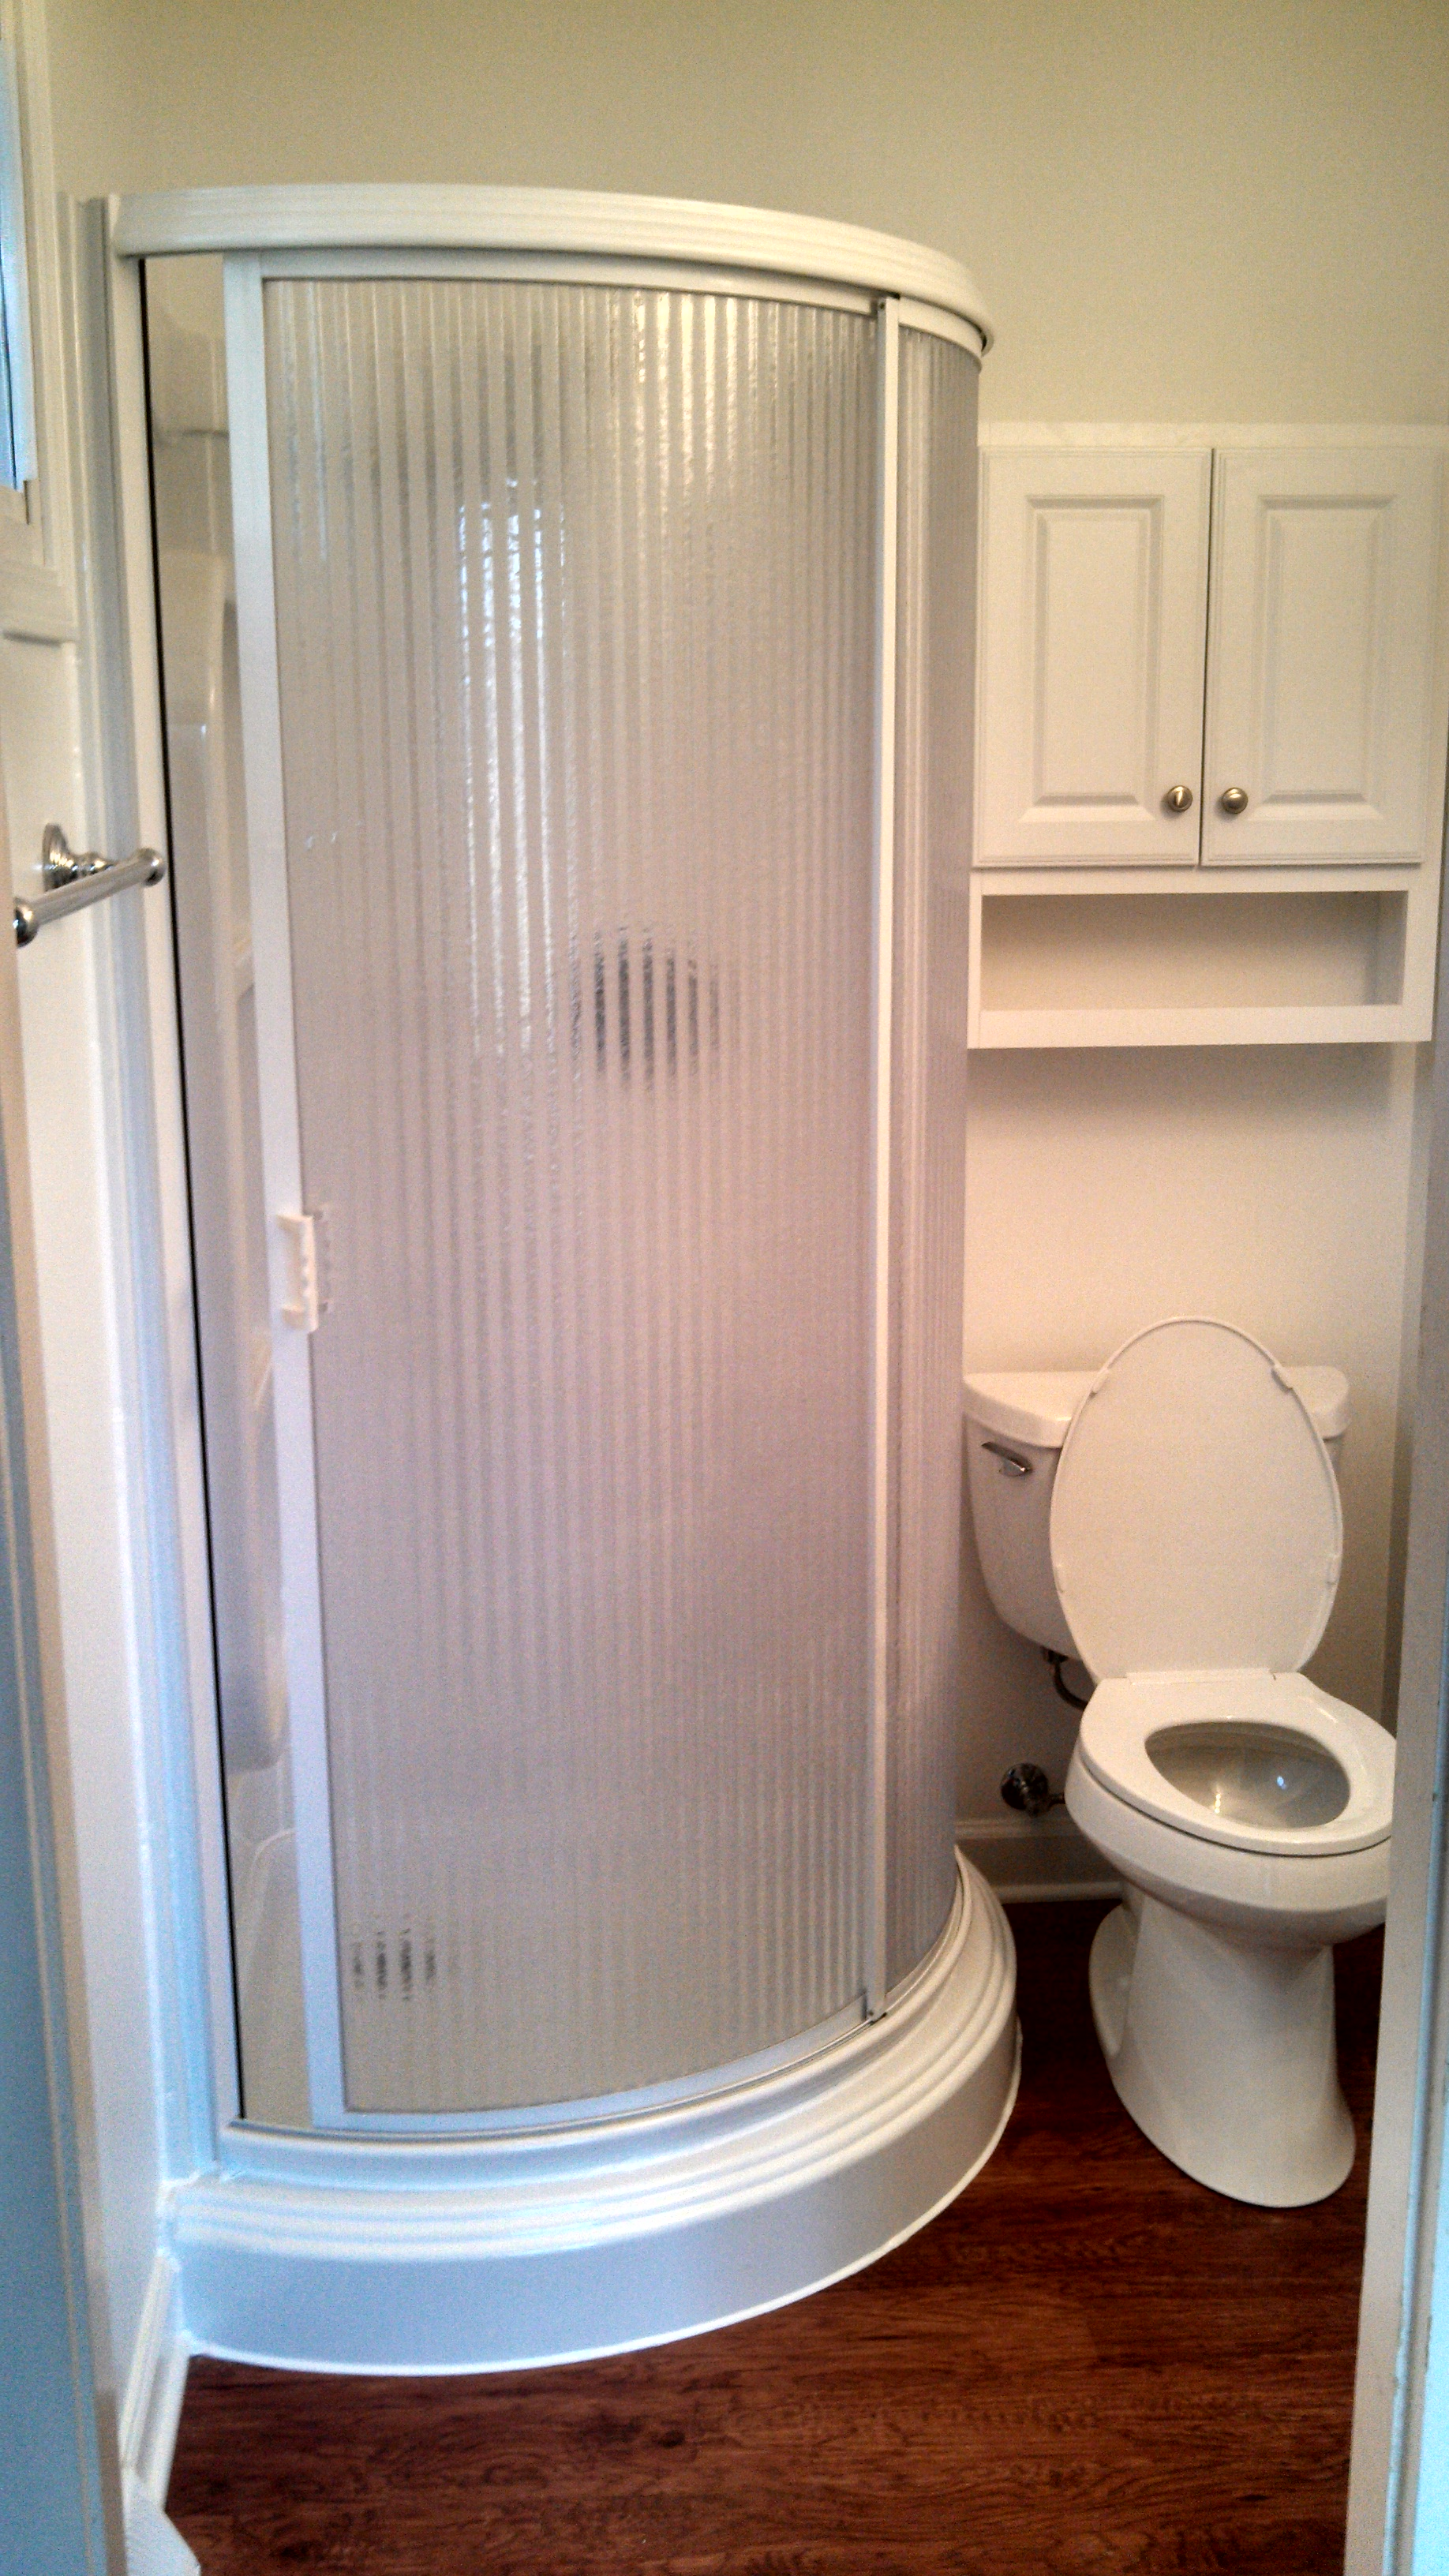 new shower and toilet